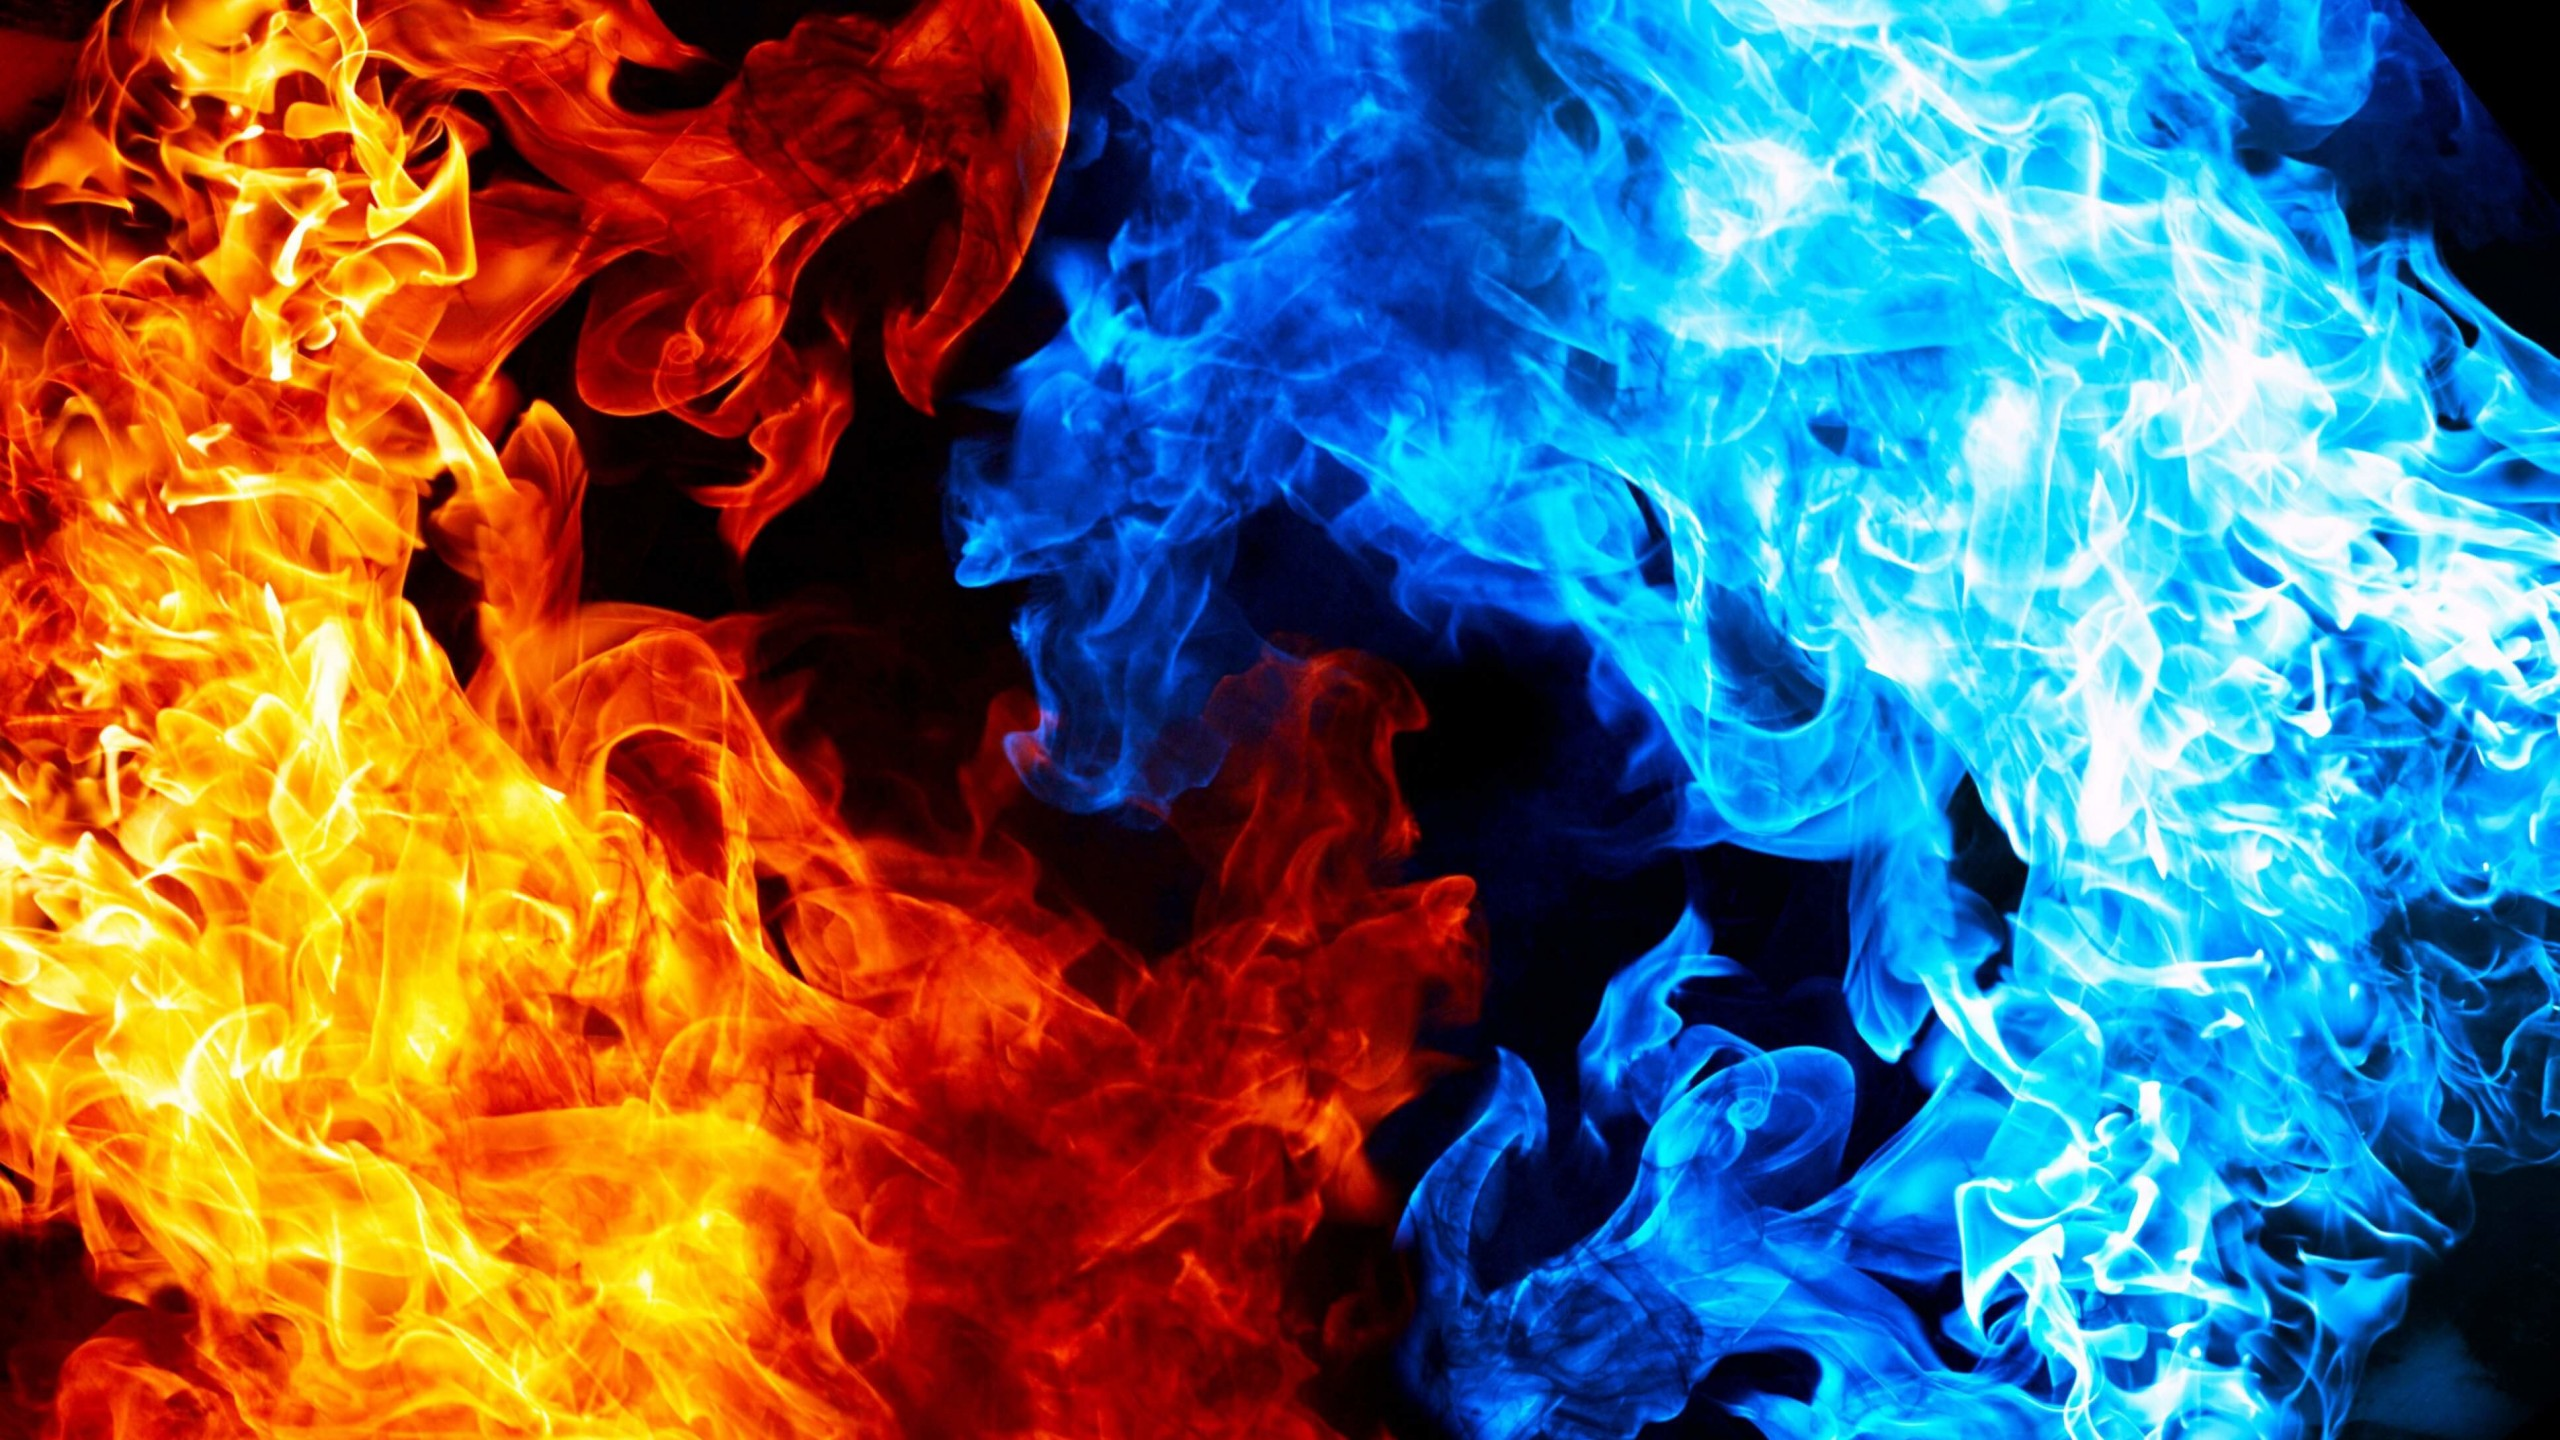 Blue And Red Fire Wallpaper for Desktop 2560x1440